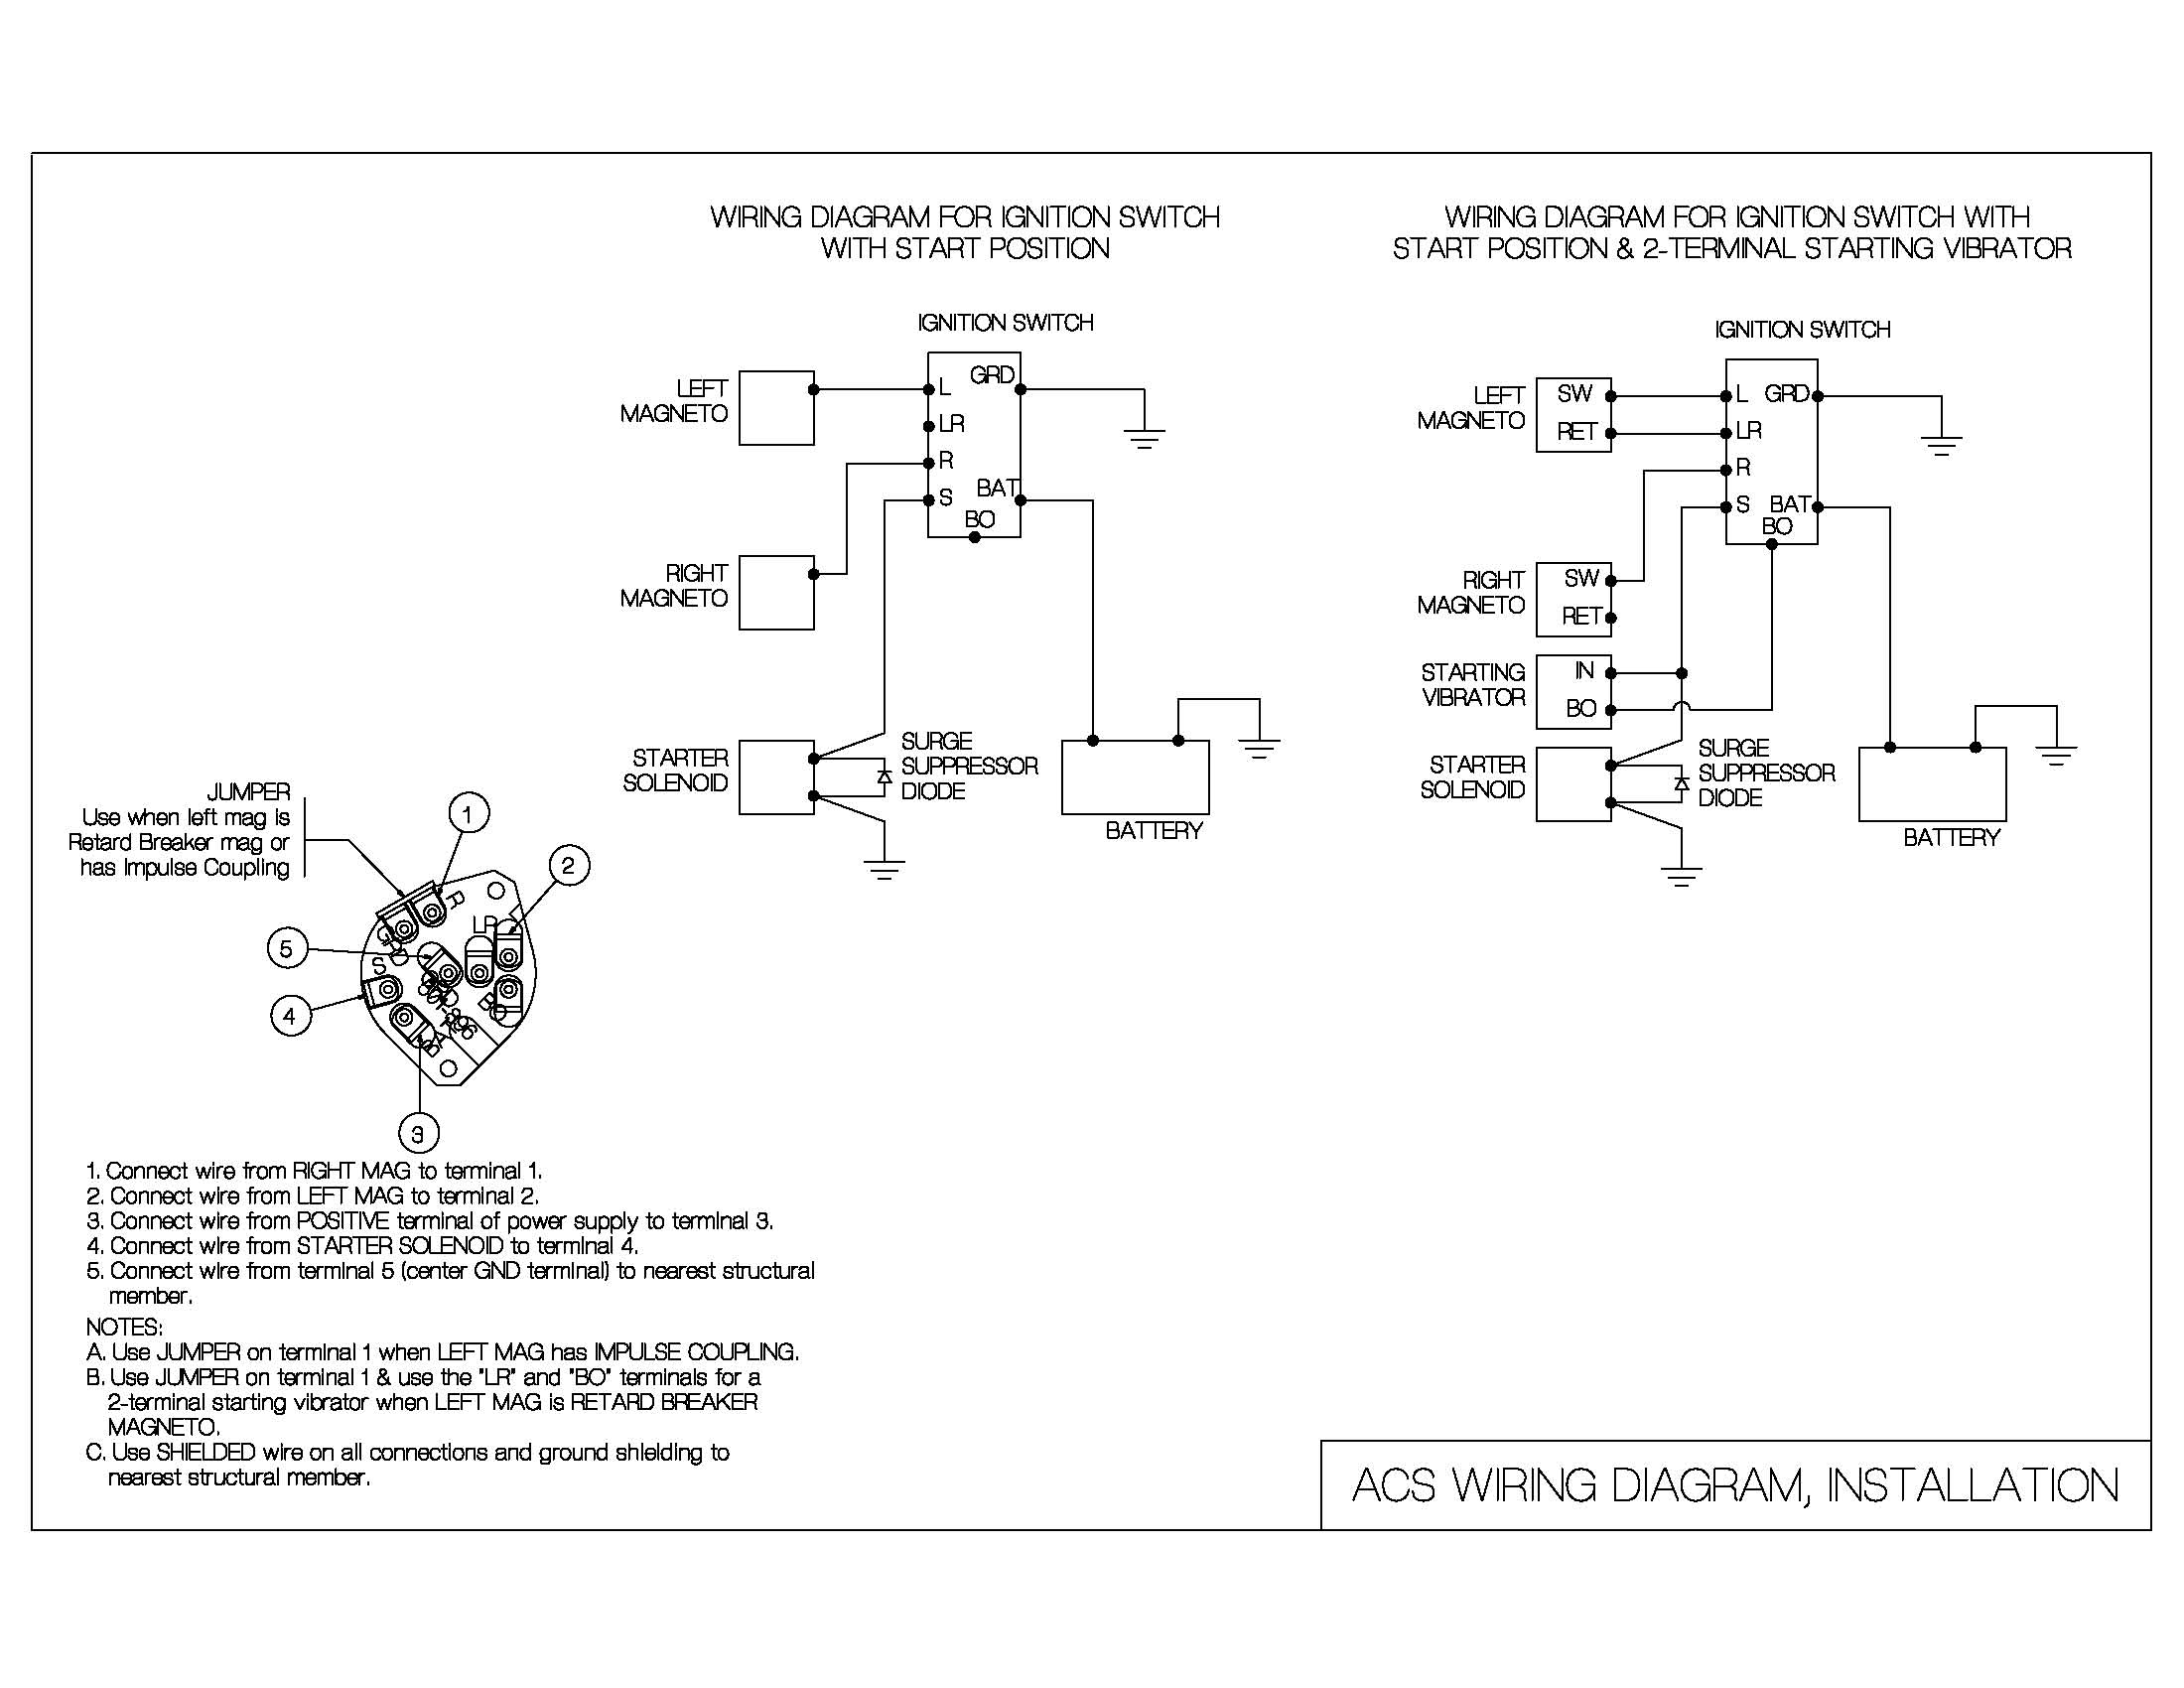 Wiring Diagram ignition switch wiring diagram acs products company aircraft ignition switch wiring diagram at bayanpartner.co